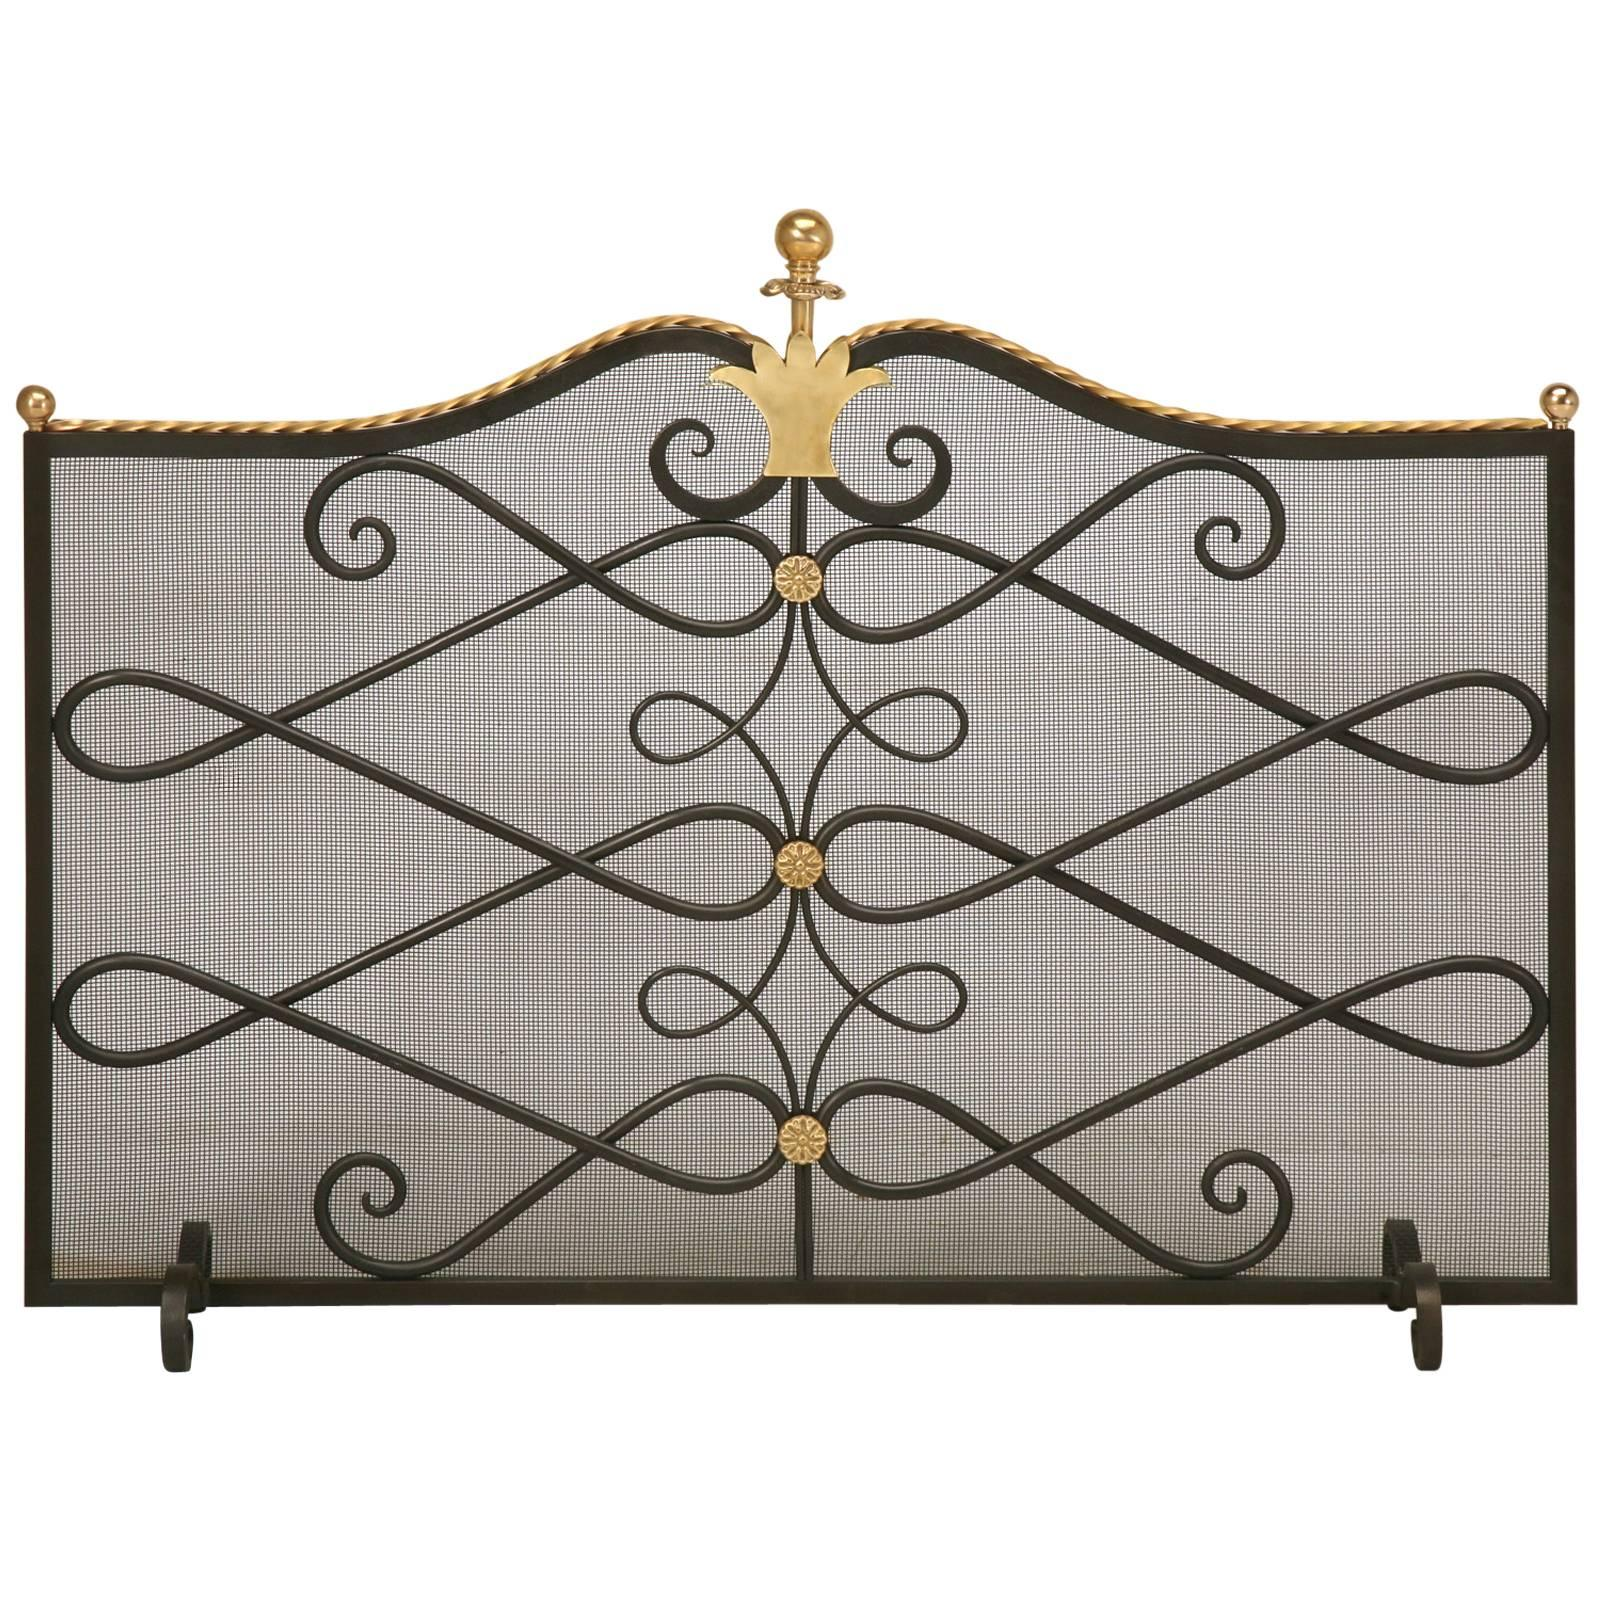 Brass Fireplace Screen Custom Steel And Brass Fireplace Screen And Mesh